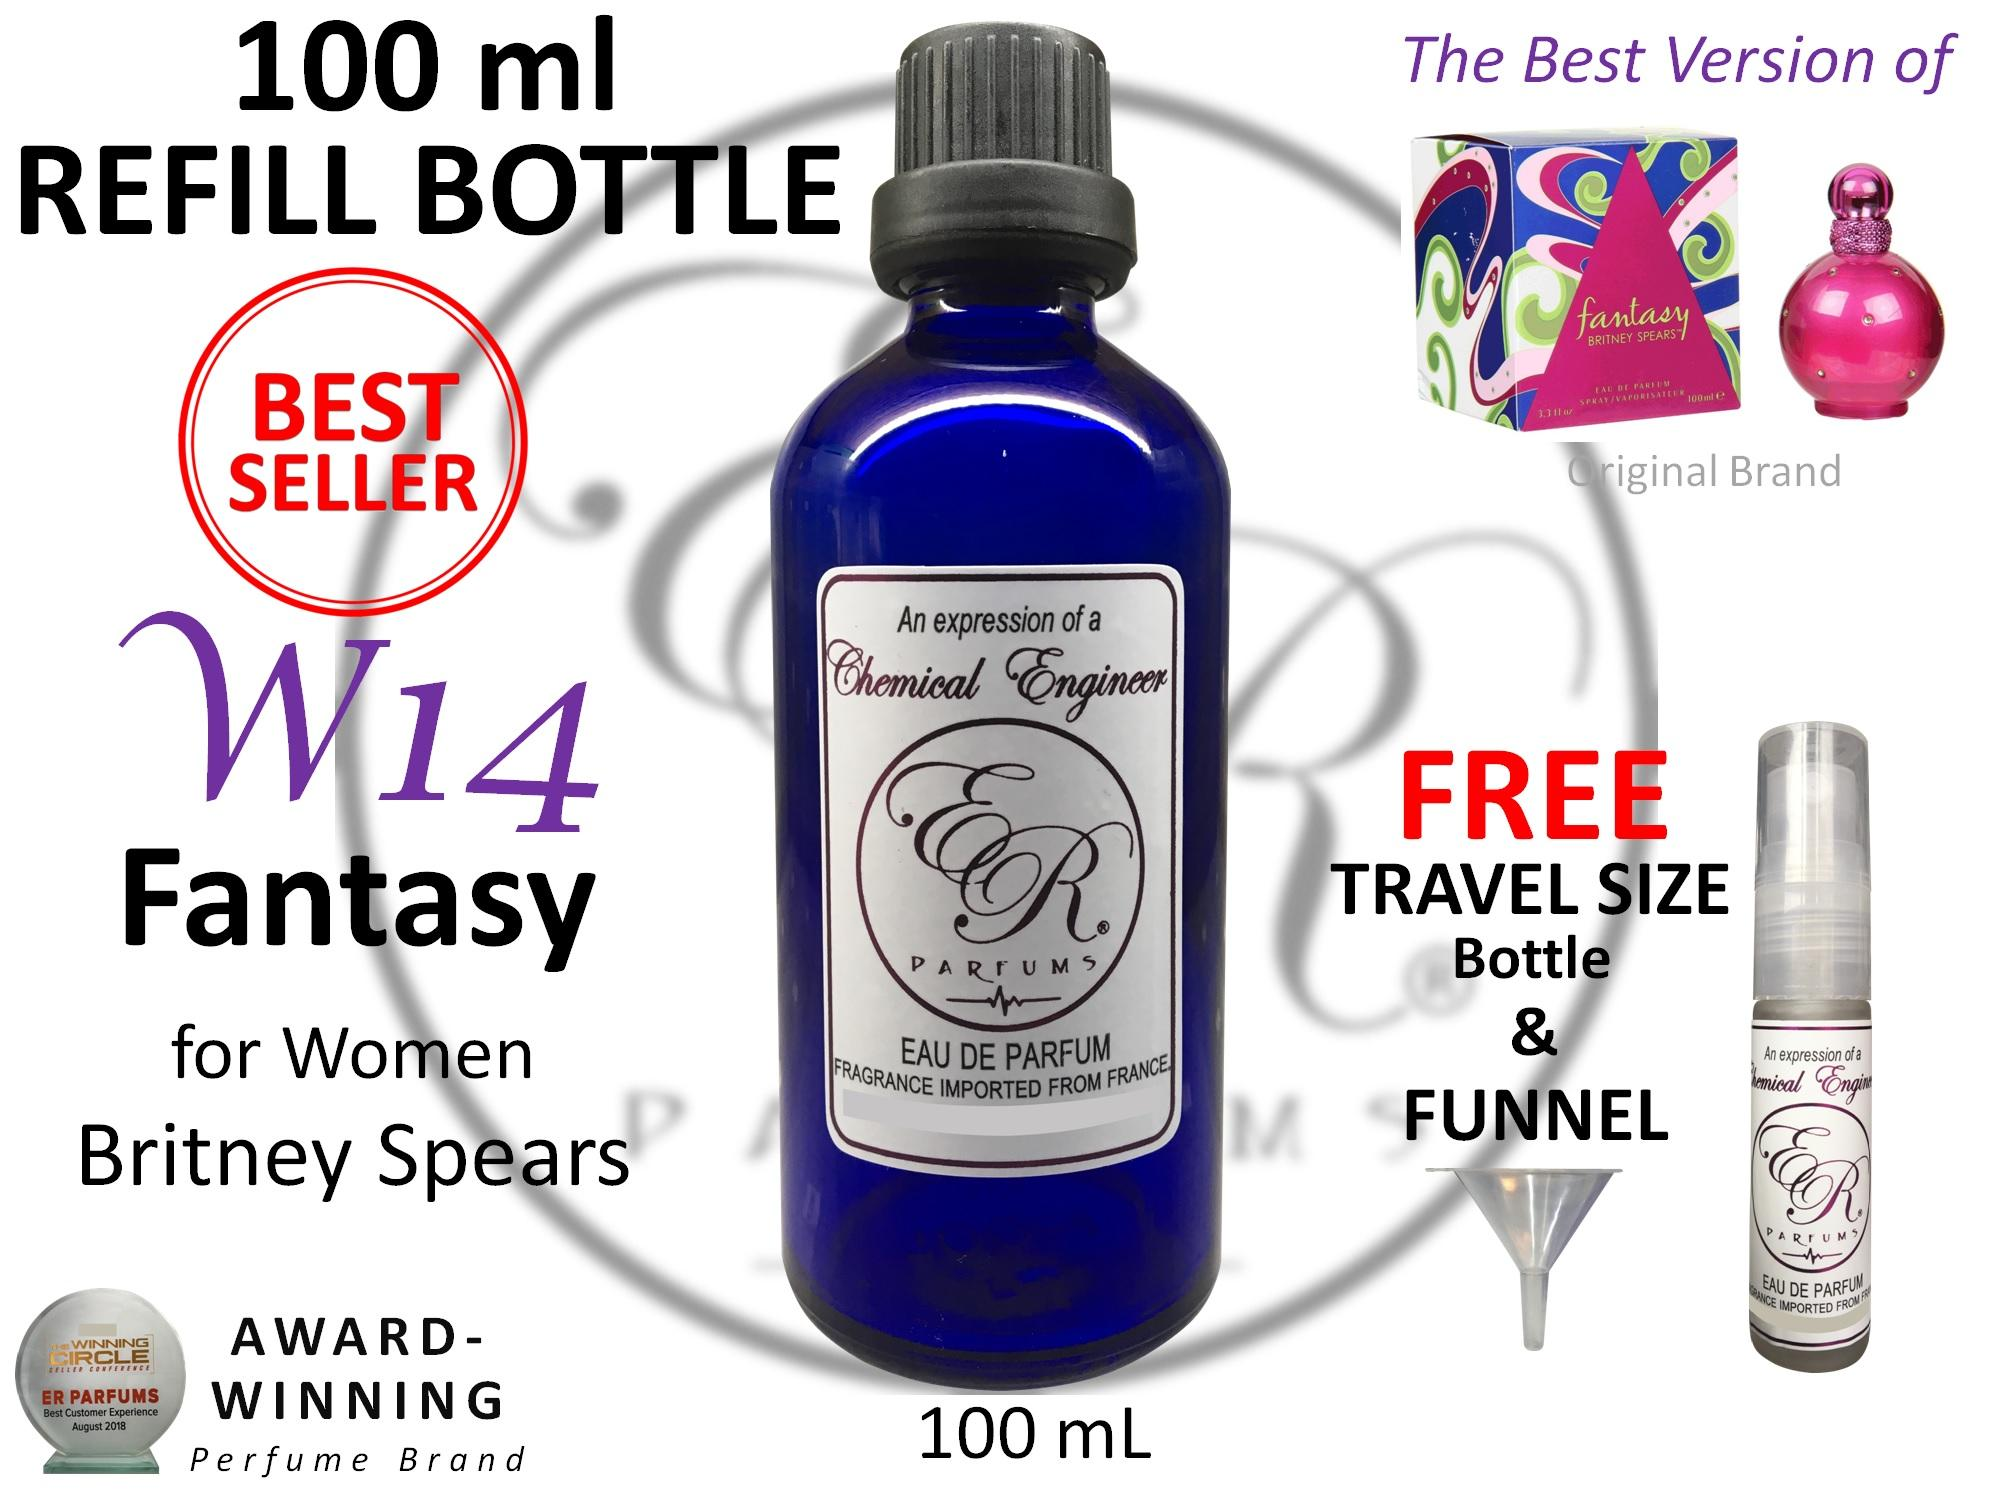 ER PARFUMS W14 Fantasy for Women by Britney Spears 1 piece 100 mL REFILL BOTTLE with FREE Empty Bottle - BEST VERSION